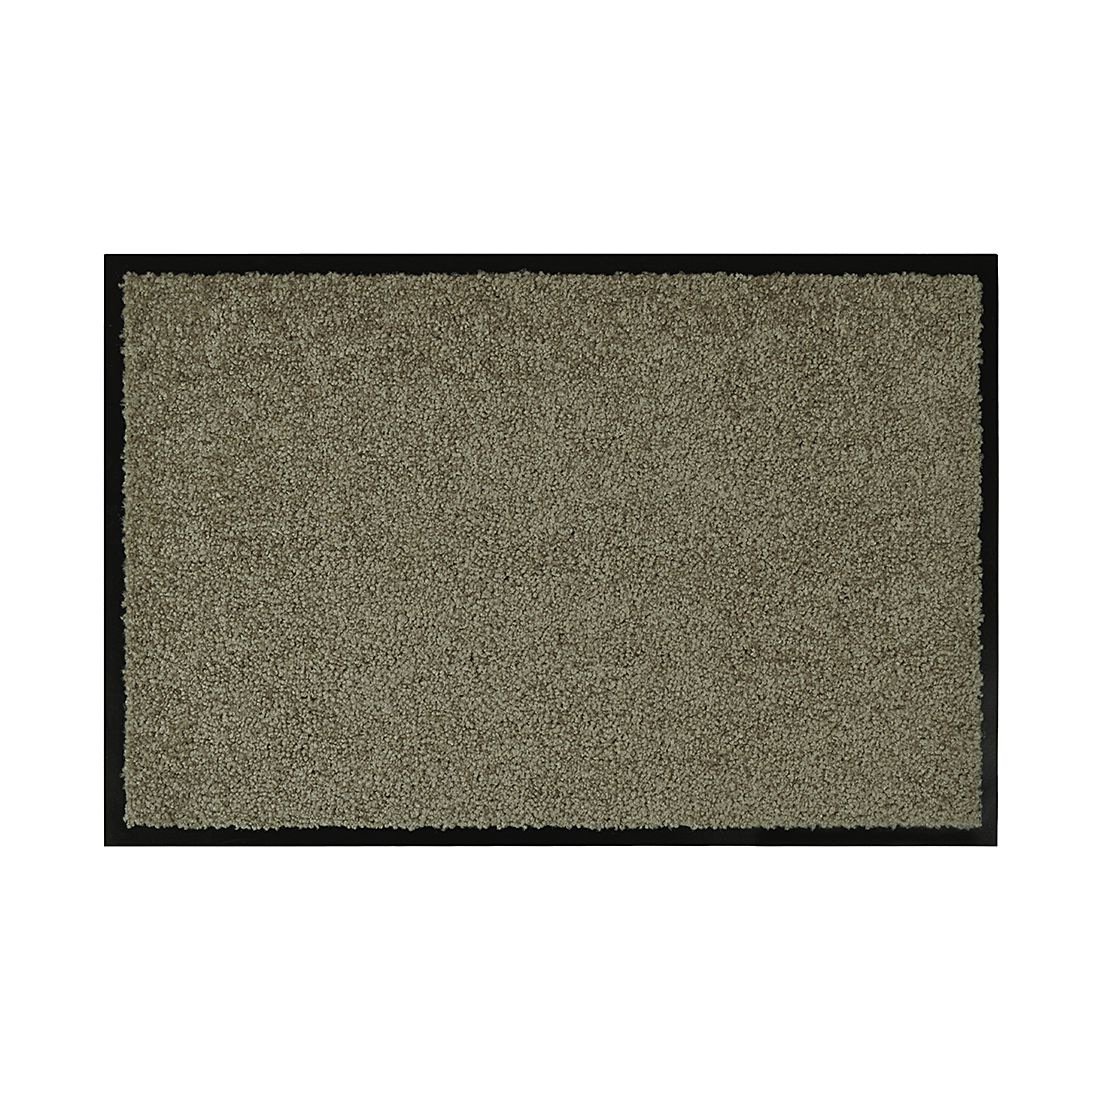 Zerbino Wash e Clean - Grigio talpa - 160 x 240 cm, Hanse Home Collection